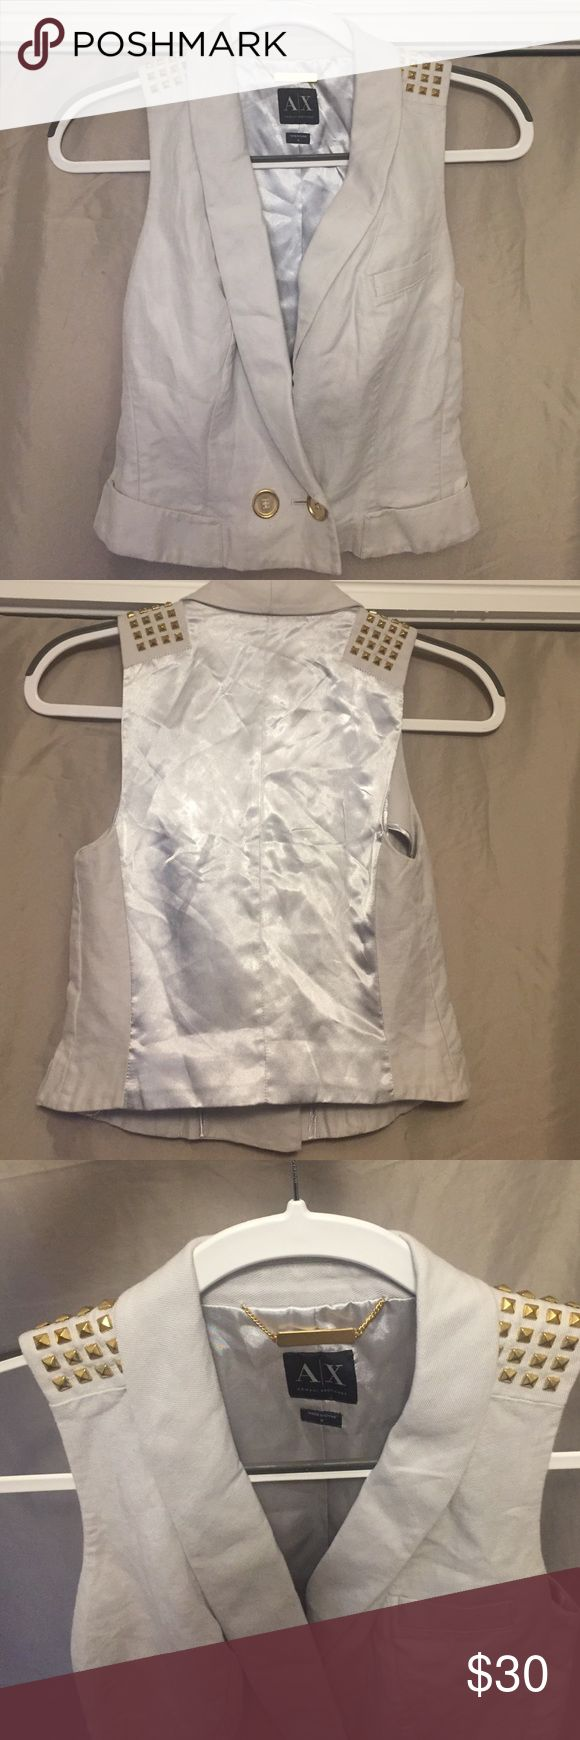 Armani Exchange vest Great condition, hardly worn. Armani Exchange vest in size small. In a slate color (mix of light blue and gray) . Studs on the shoulders and silk back. Shorter style so falls above the hips. You can definitely dress this up or down A/X Armani Exchange Other